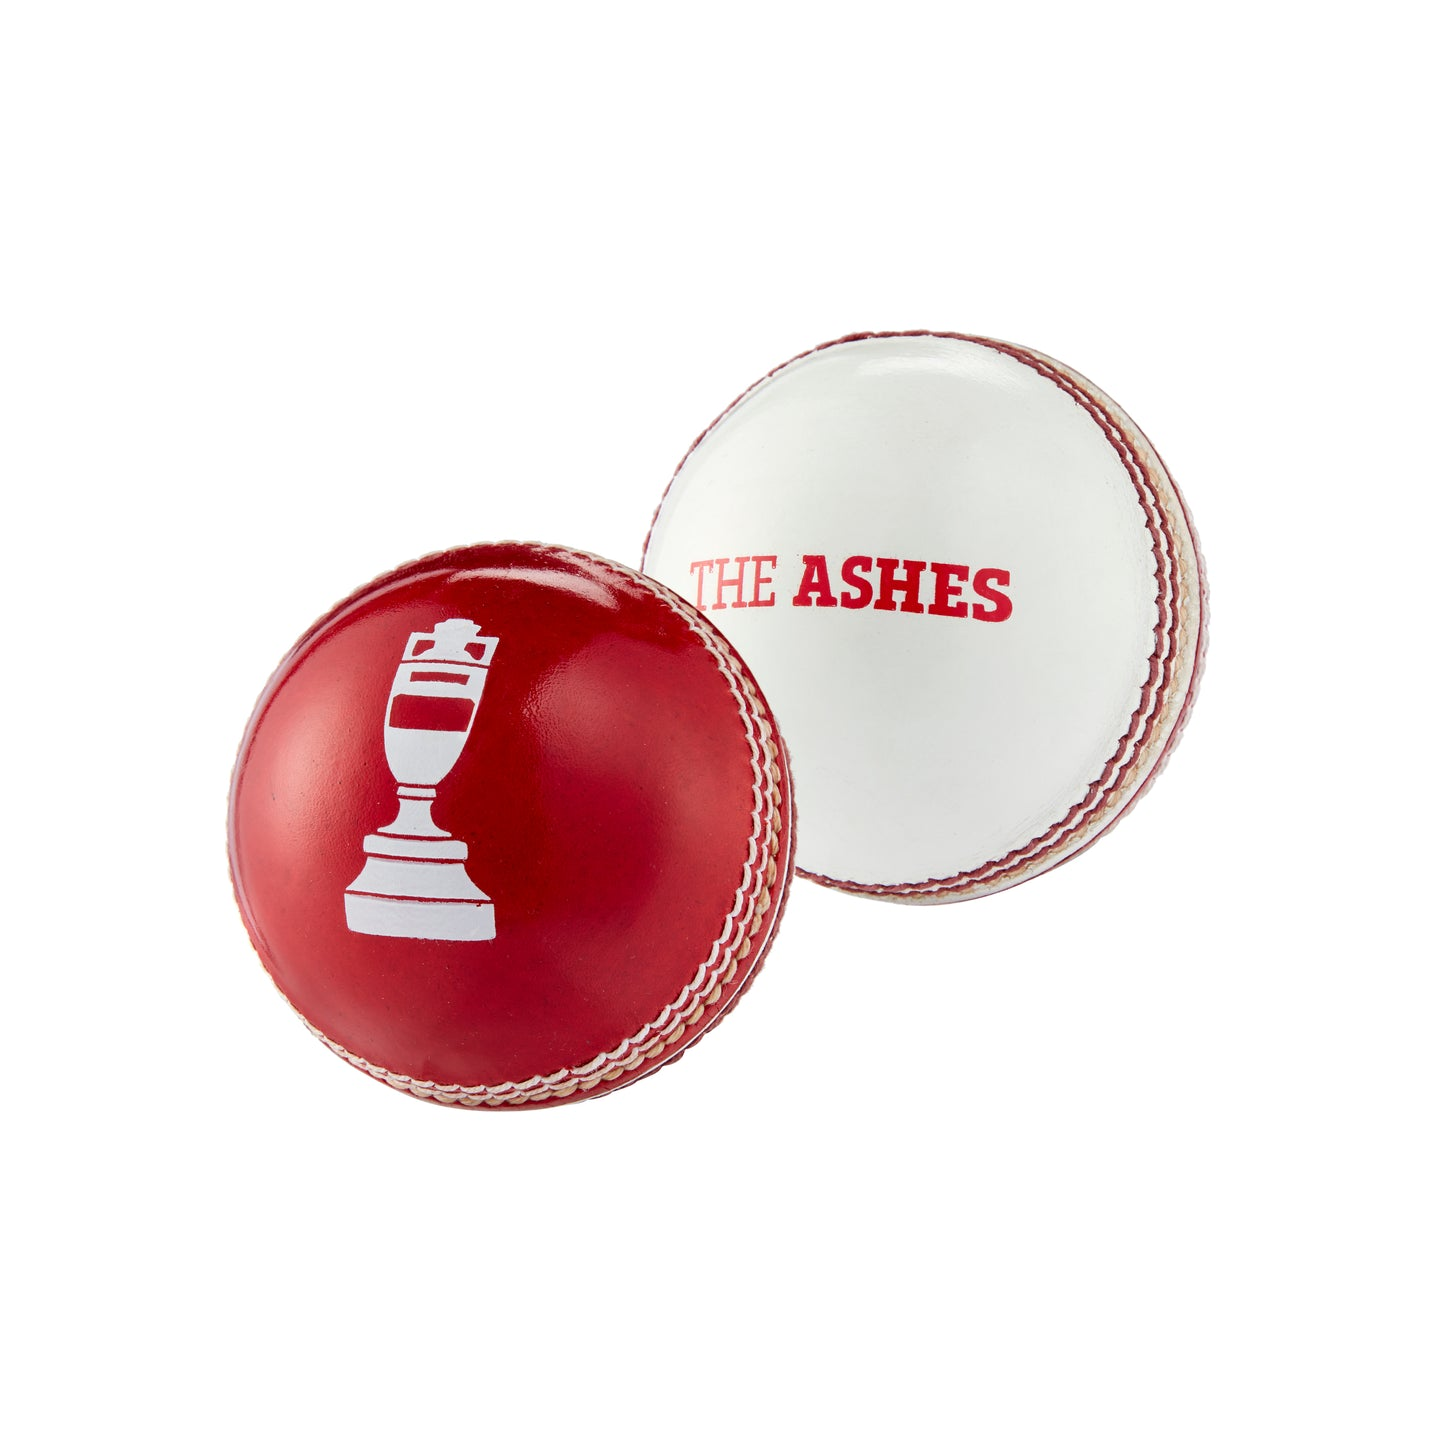 LORD'S ASHES URN MINI BALL RED/WHITE